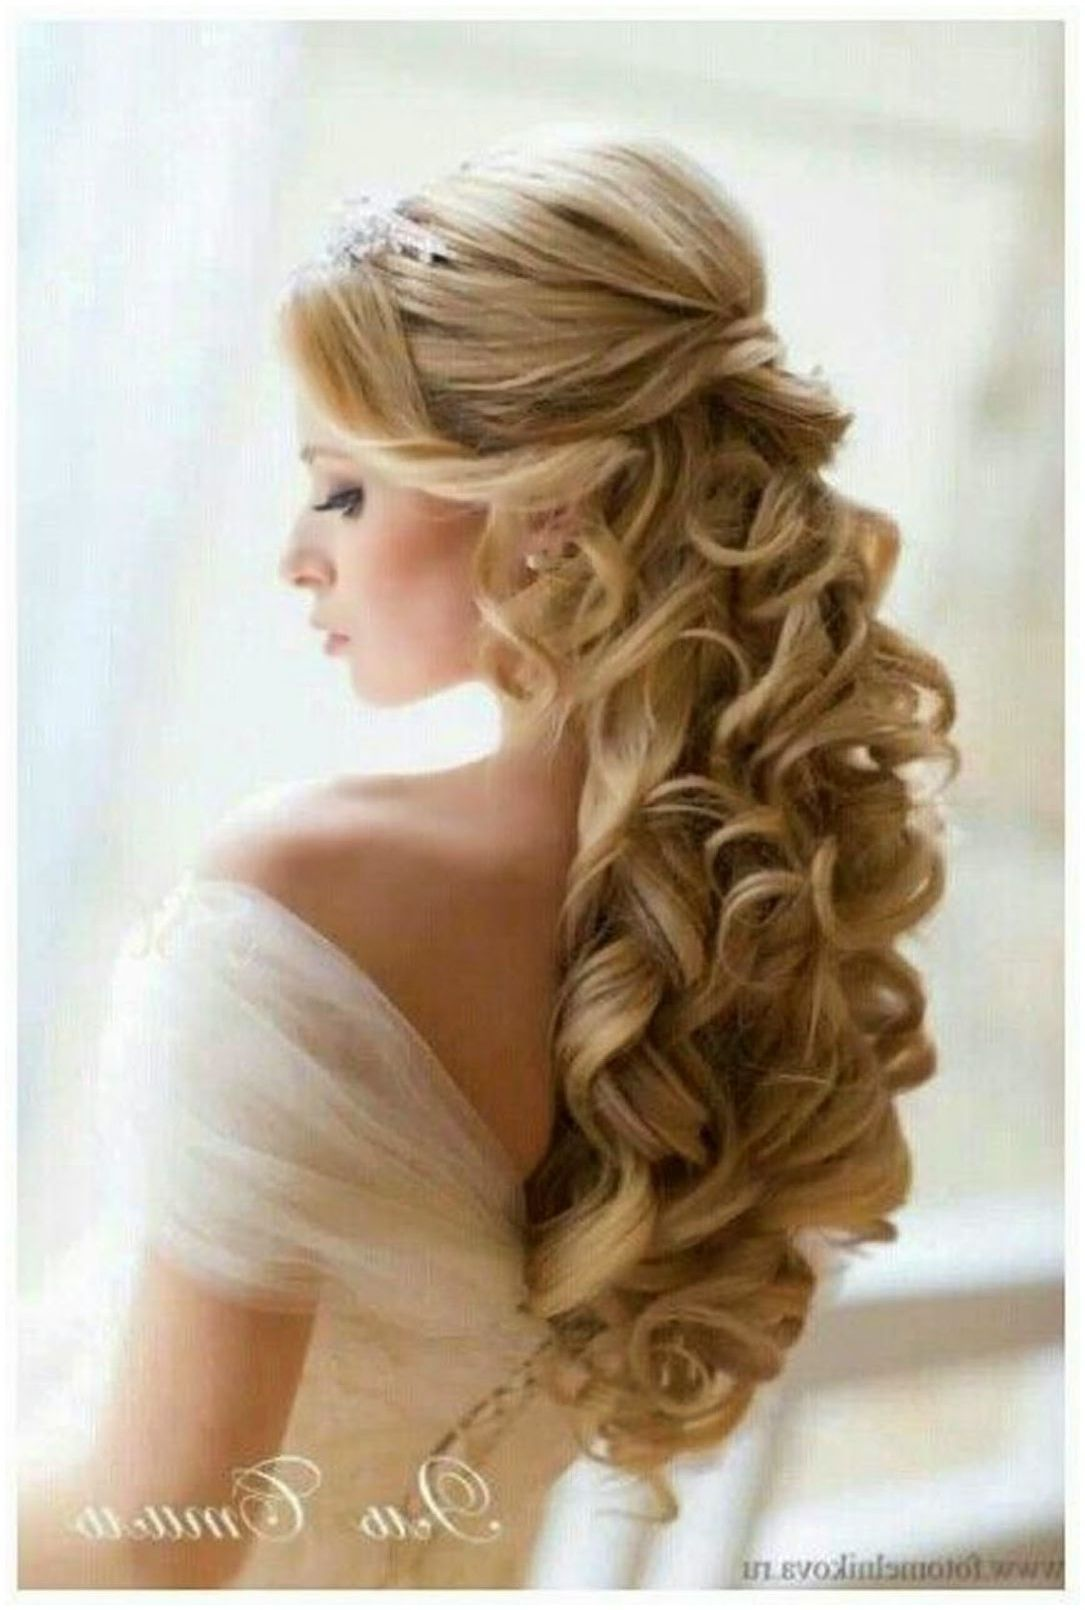 hairstyles for long hair for wedding | hair in 2019